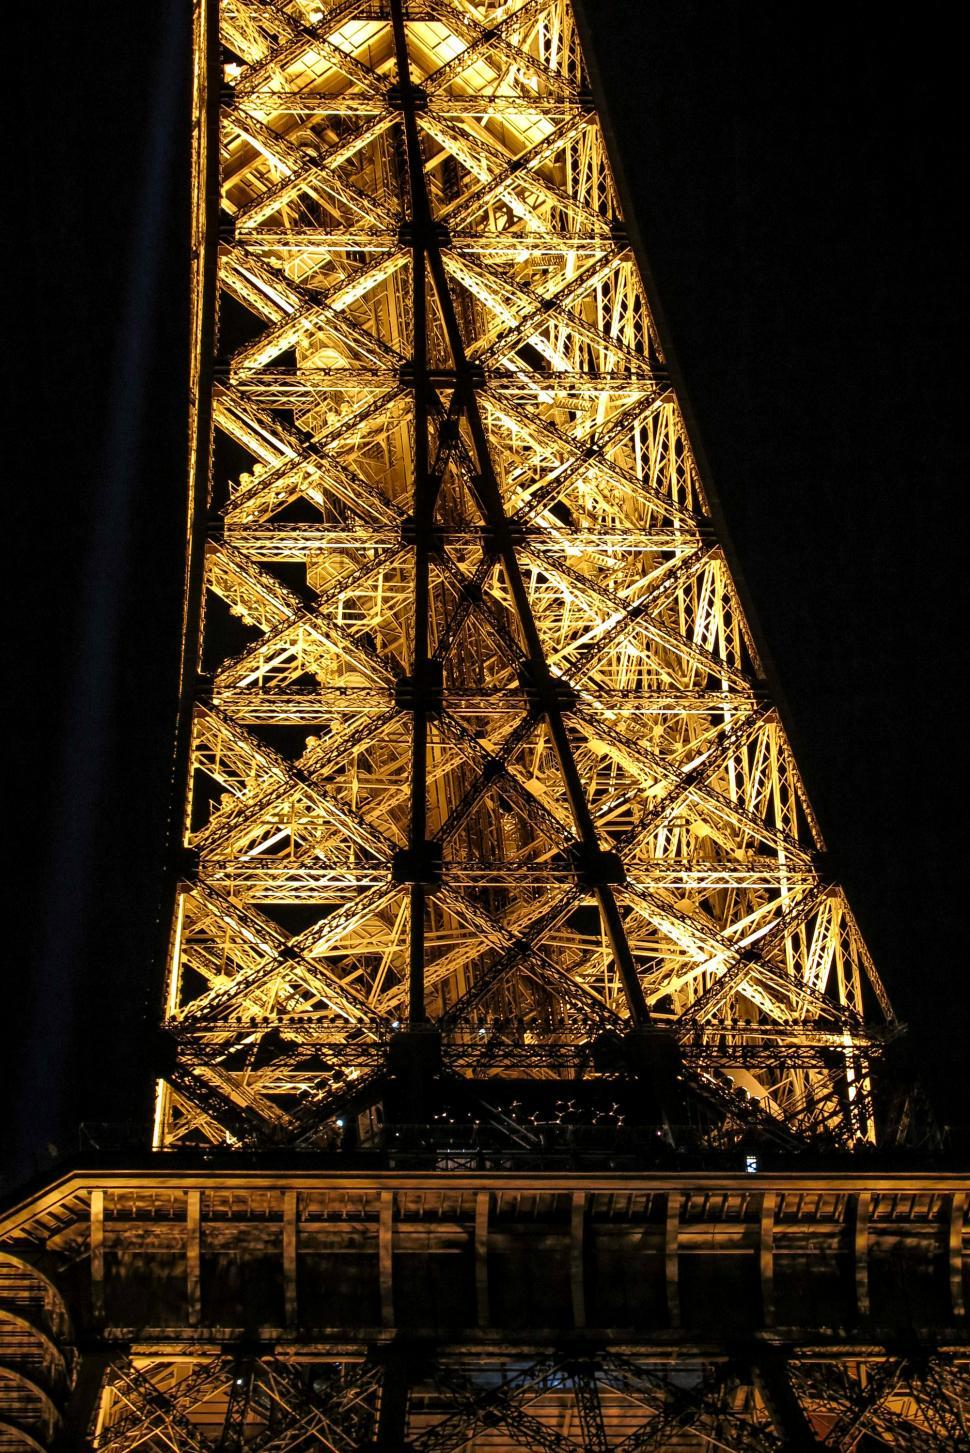 Download Free Stock HD Photo of Tower Structure at Night Online